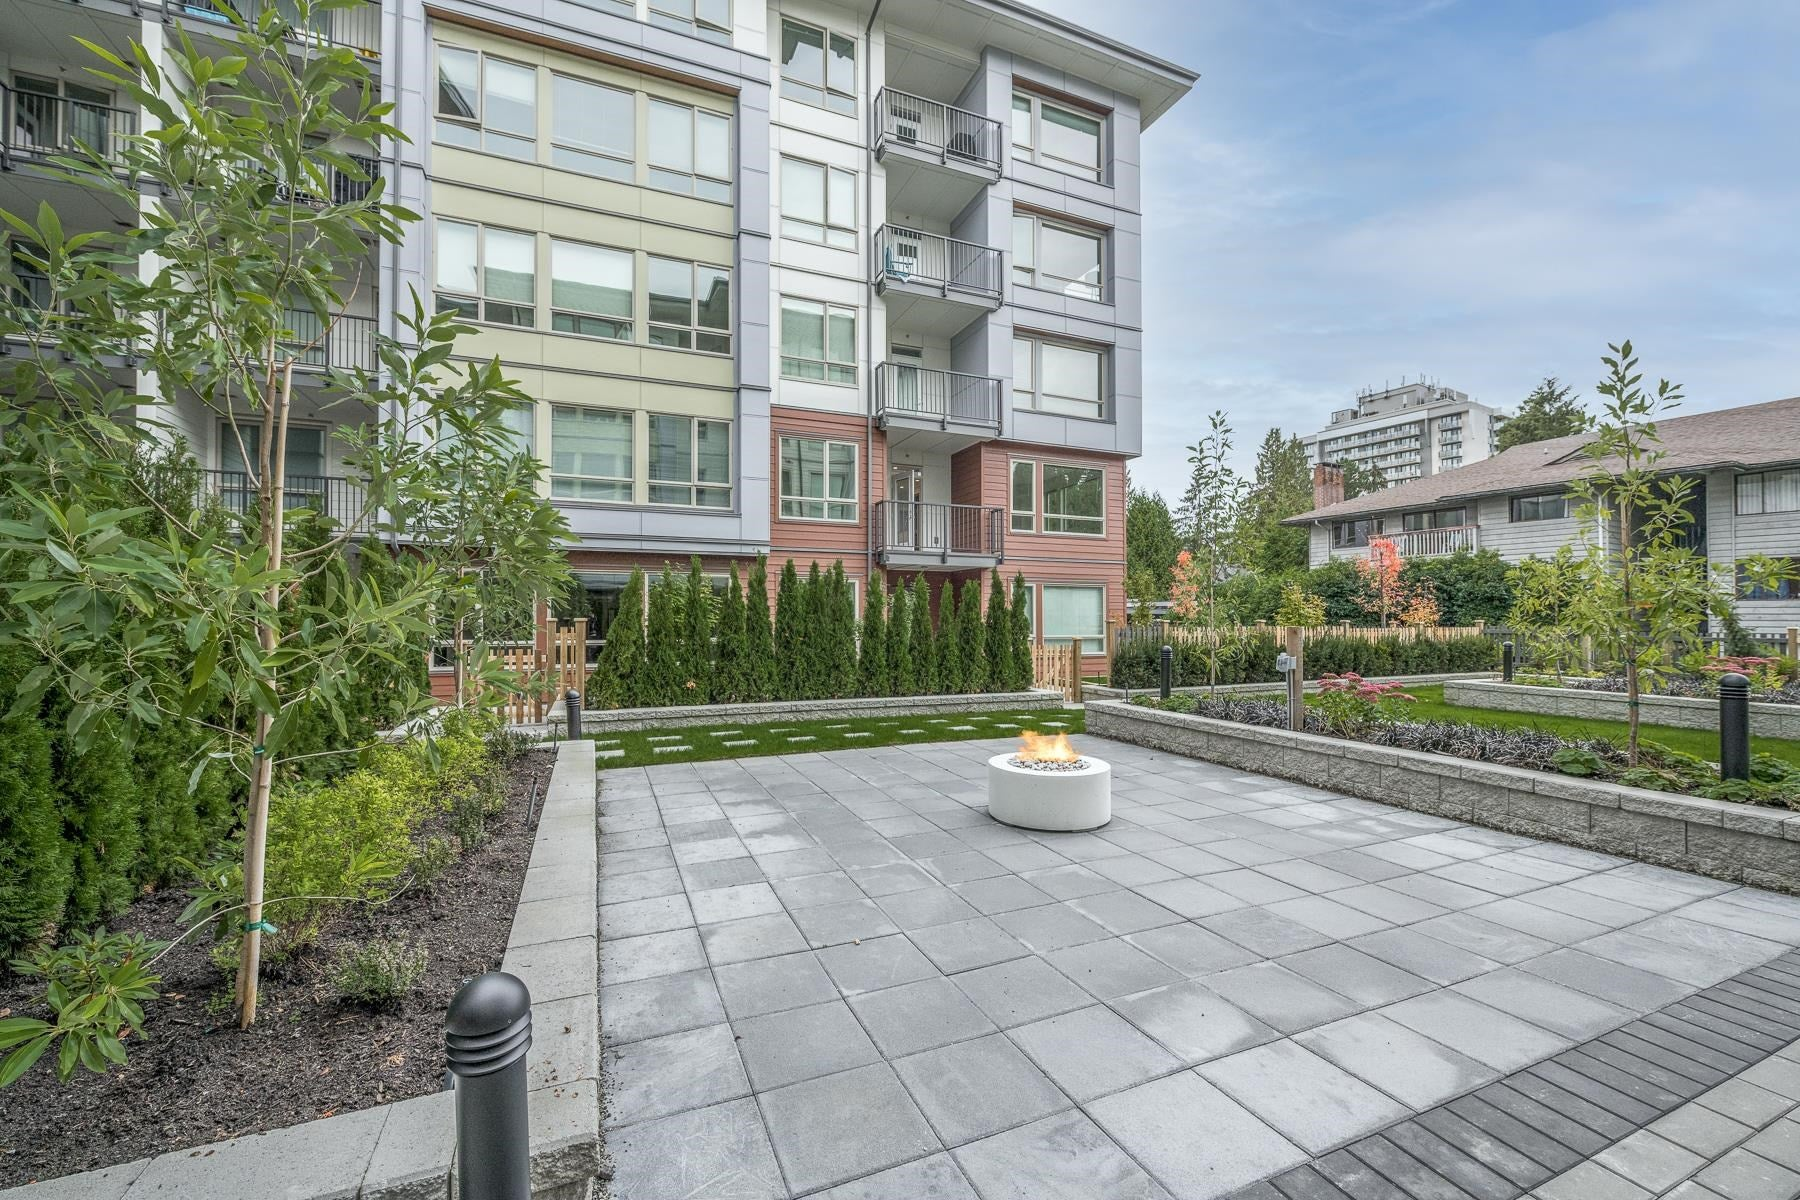 219 2651 LIBRARY LANE - Lynn Valley Apartment/Condo for sale, 2 Bedrooms (R2623232) - #19